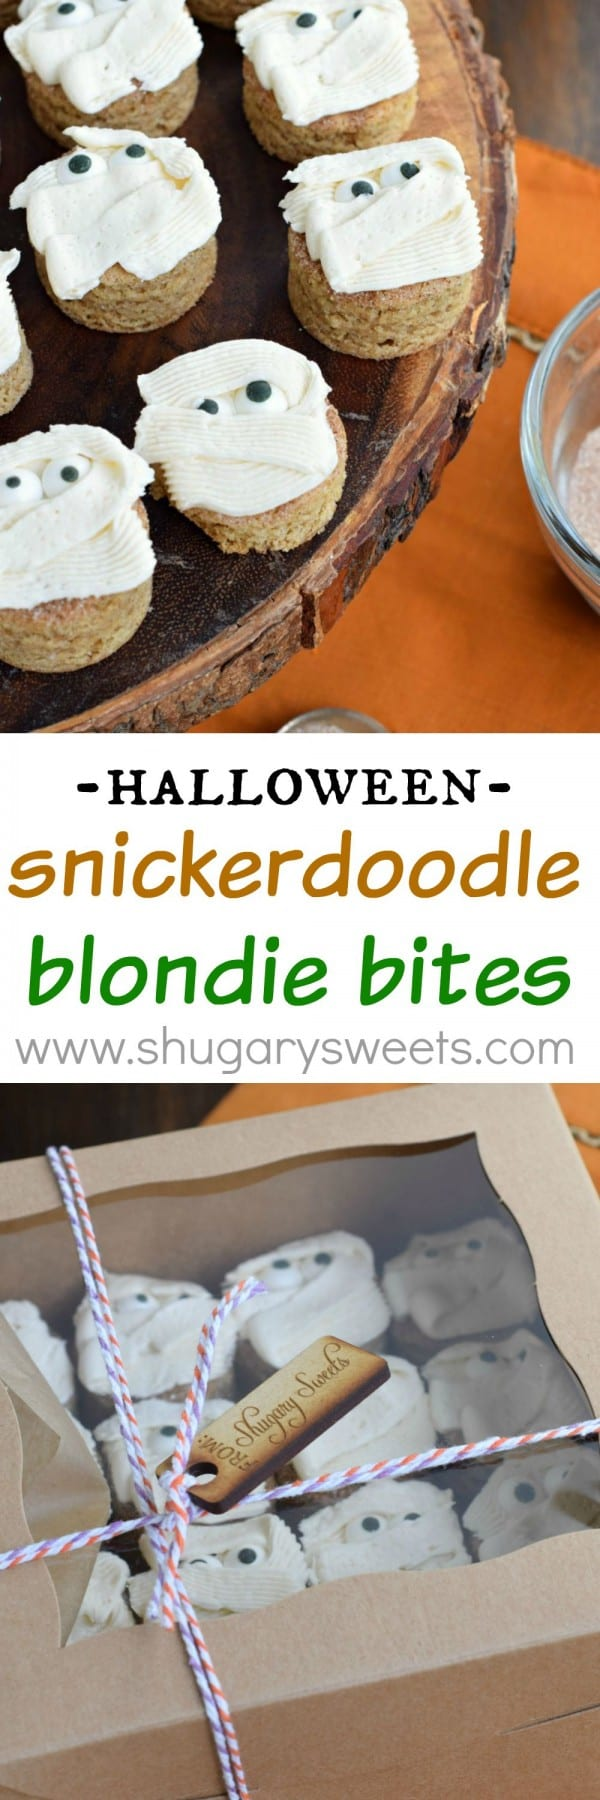 Snickerdoodle Blondie Bites with with buttercream frosting. Perfect holiday treats, easy to make too! Halloween Mummies!